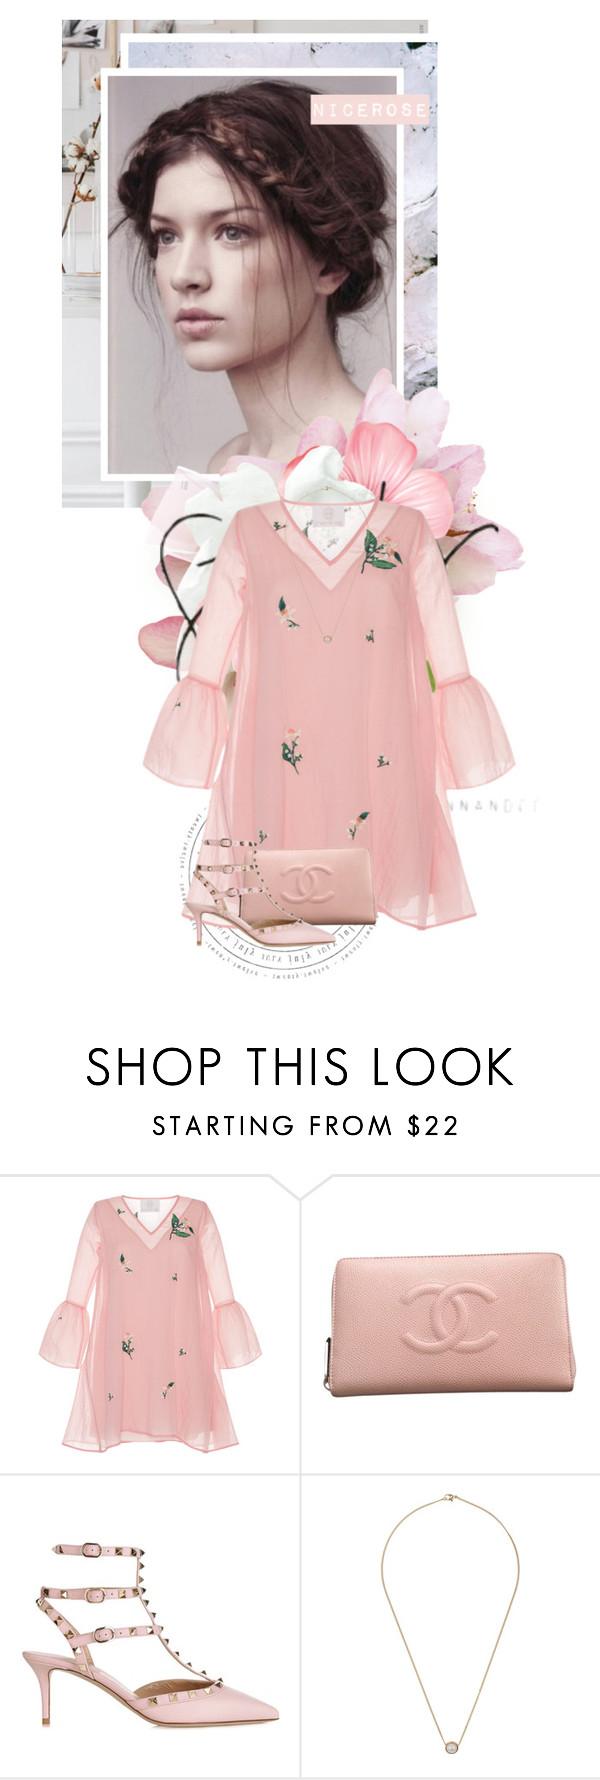 """""""Romantic nature"""" by nicerose ❤ liked on Polyvore featuring Zayan The Label, Chanel, Valentino and Miss Selfridge"""